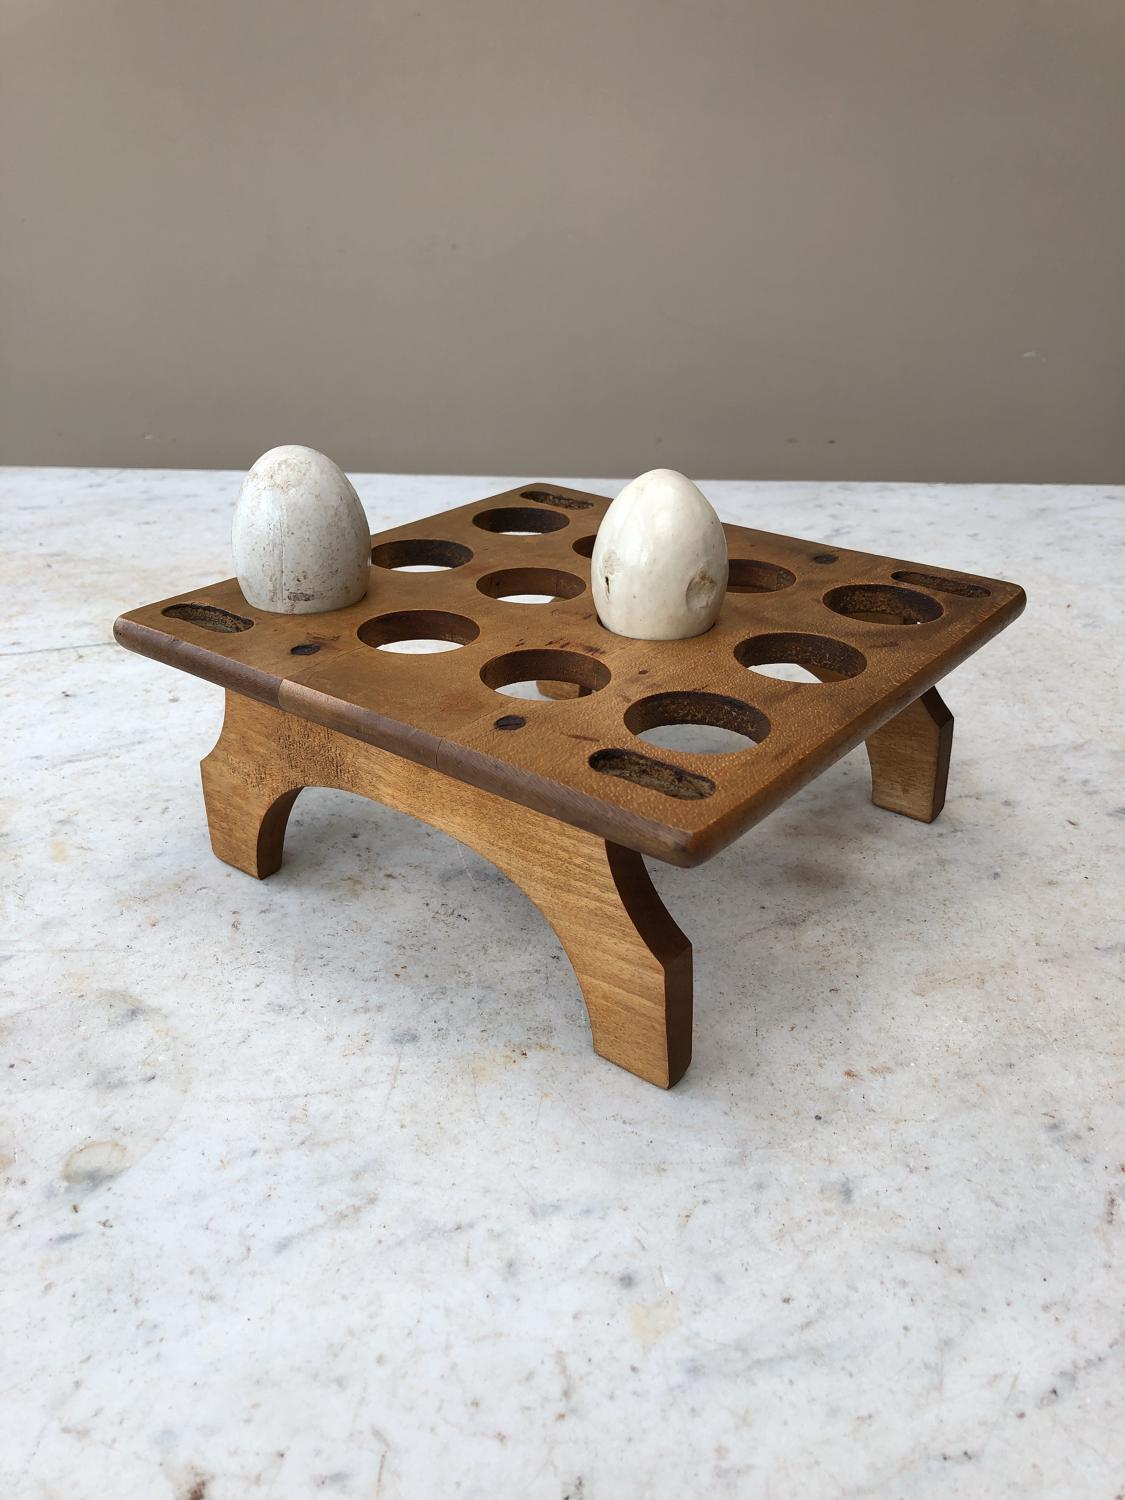 Late Victorian Sycamore Treen Egg Rack - One Dozen Eggs